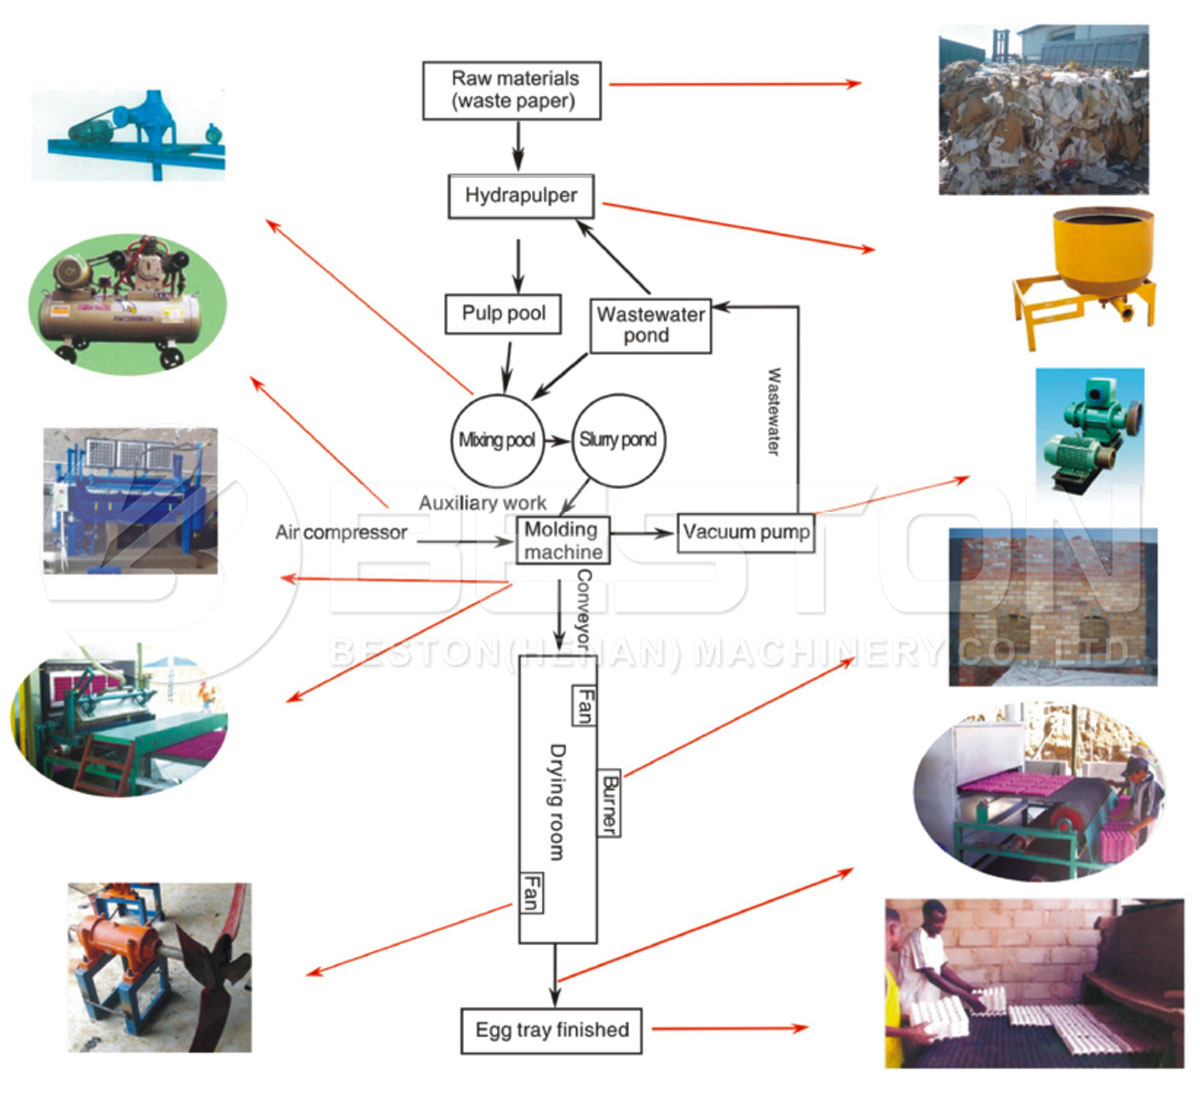 Working Process of Paper Pulp Molding Machine